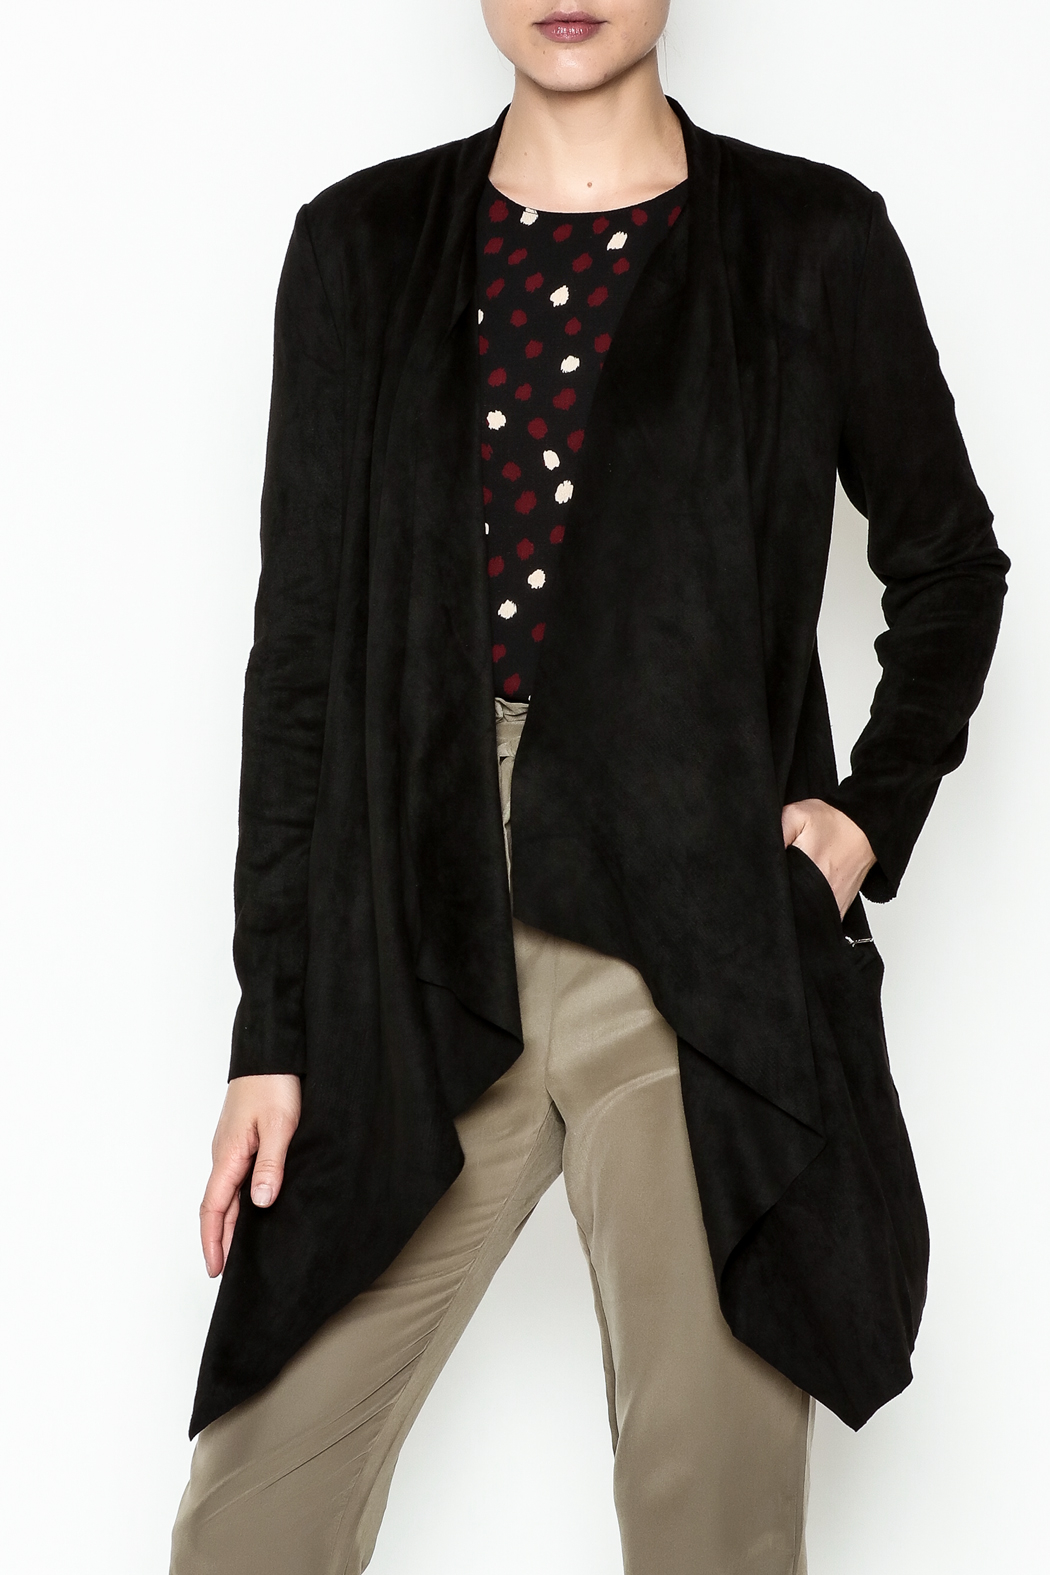 WREN & WILLA Faux Suede Cardigan - Main Image